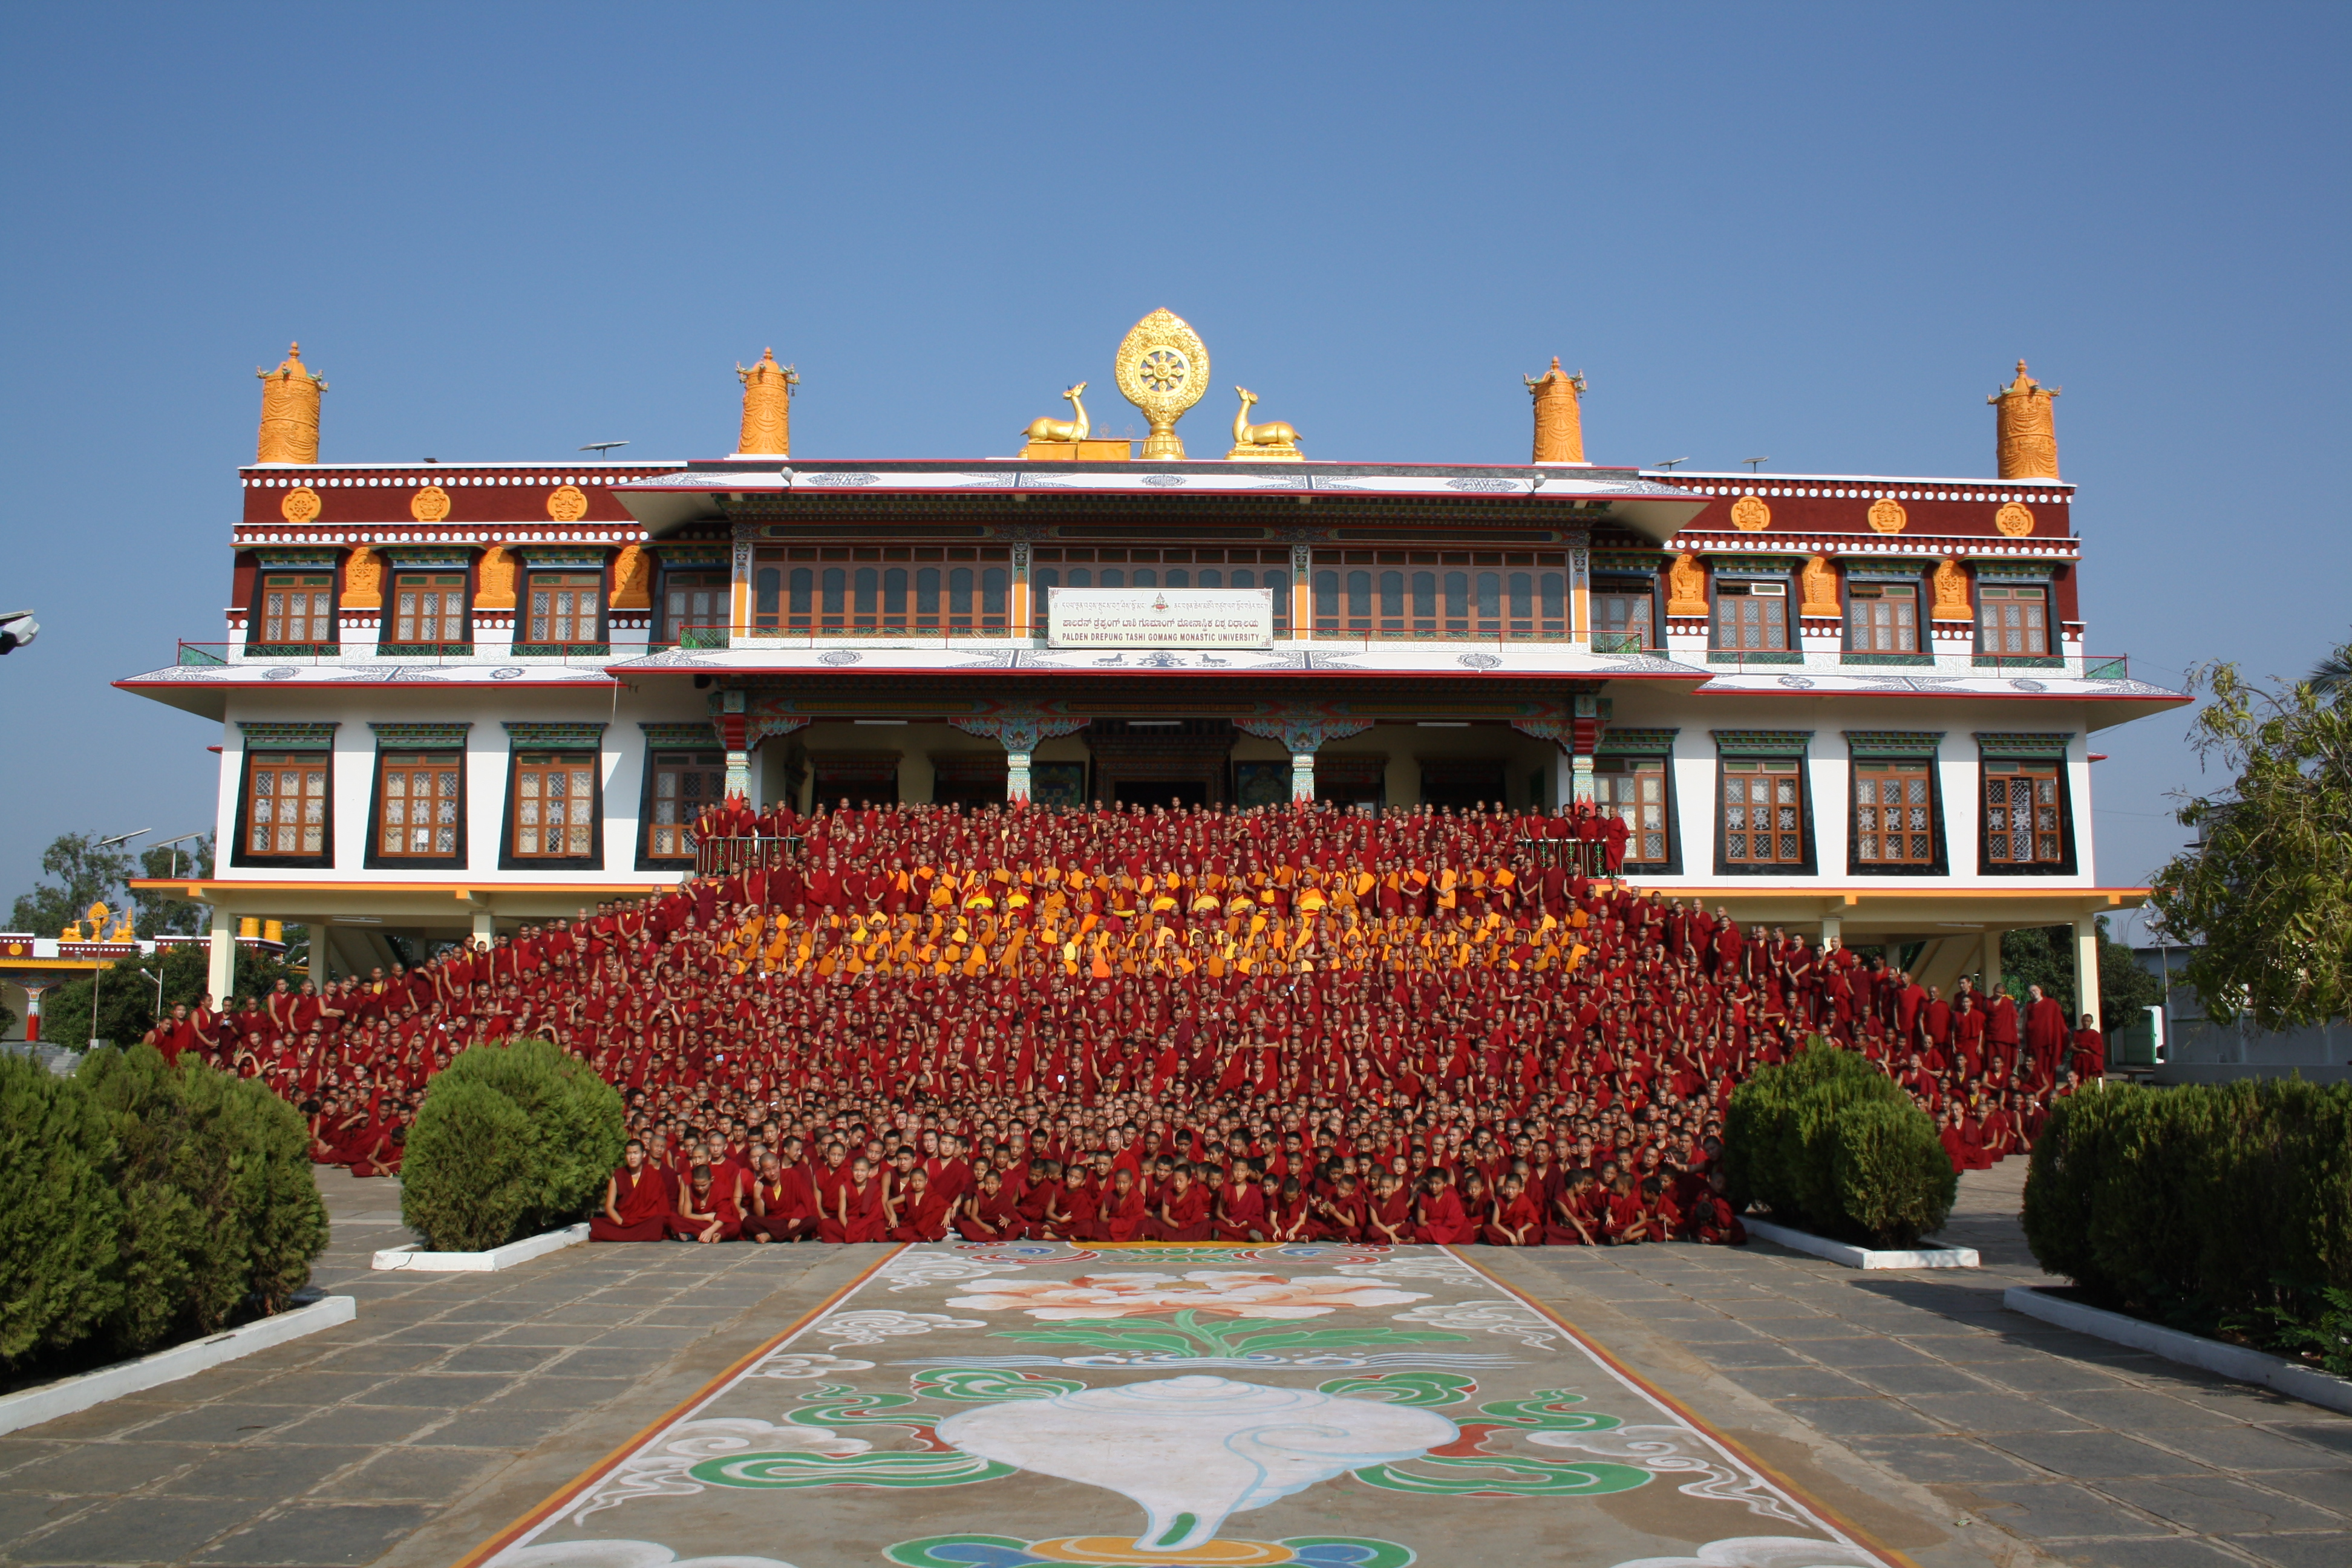 Support Drepung Gomang Monastery.